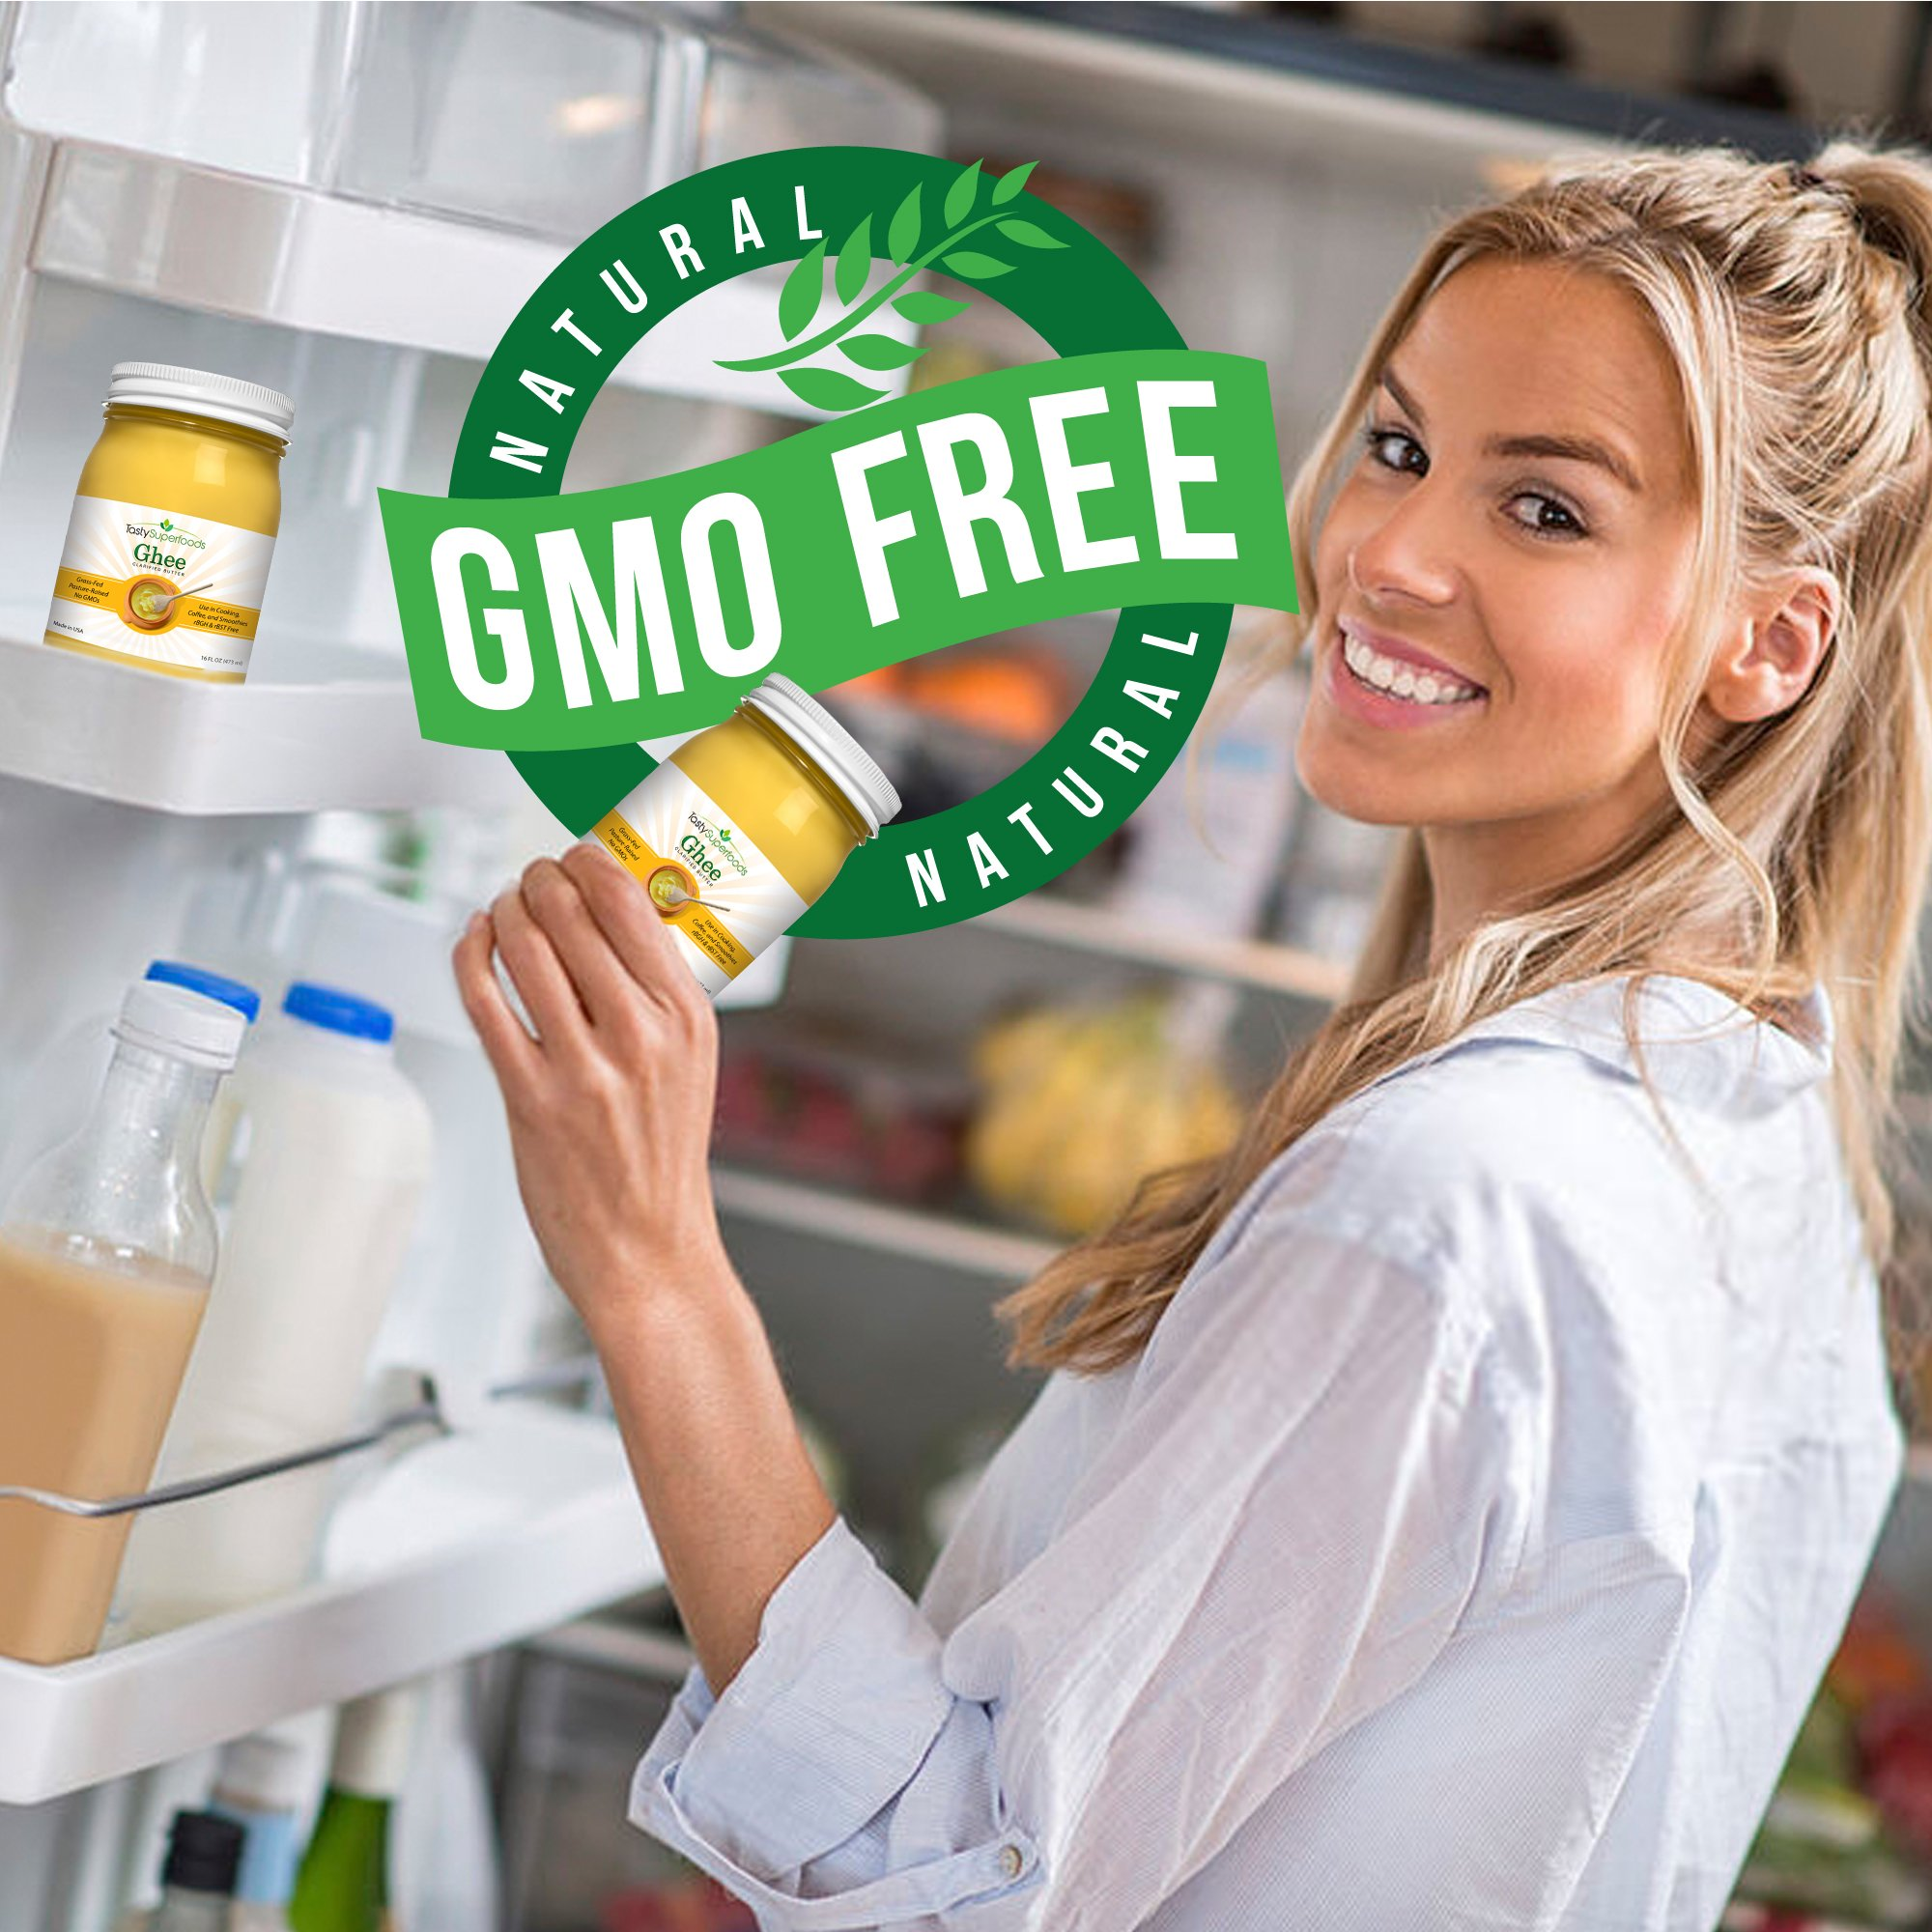 Tasty Superfoods Grass Fed Organic Ghee - Glass Jar of Pure, Unsalted Clarified Butter from Grass-Fed Cows - Best Healthy Oil for Indian Cooking, in Coffee, or for diets like Paleo and Whole30 (16oz) by Tasty Superfoods (Image #4)